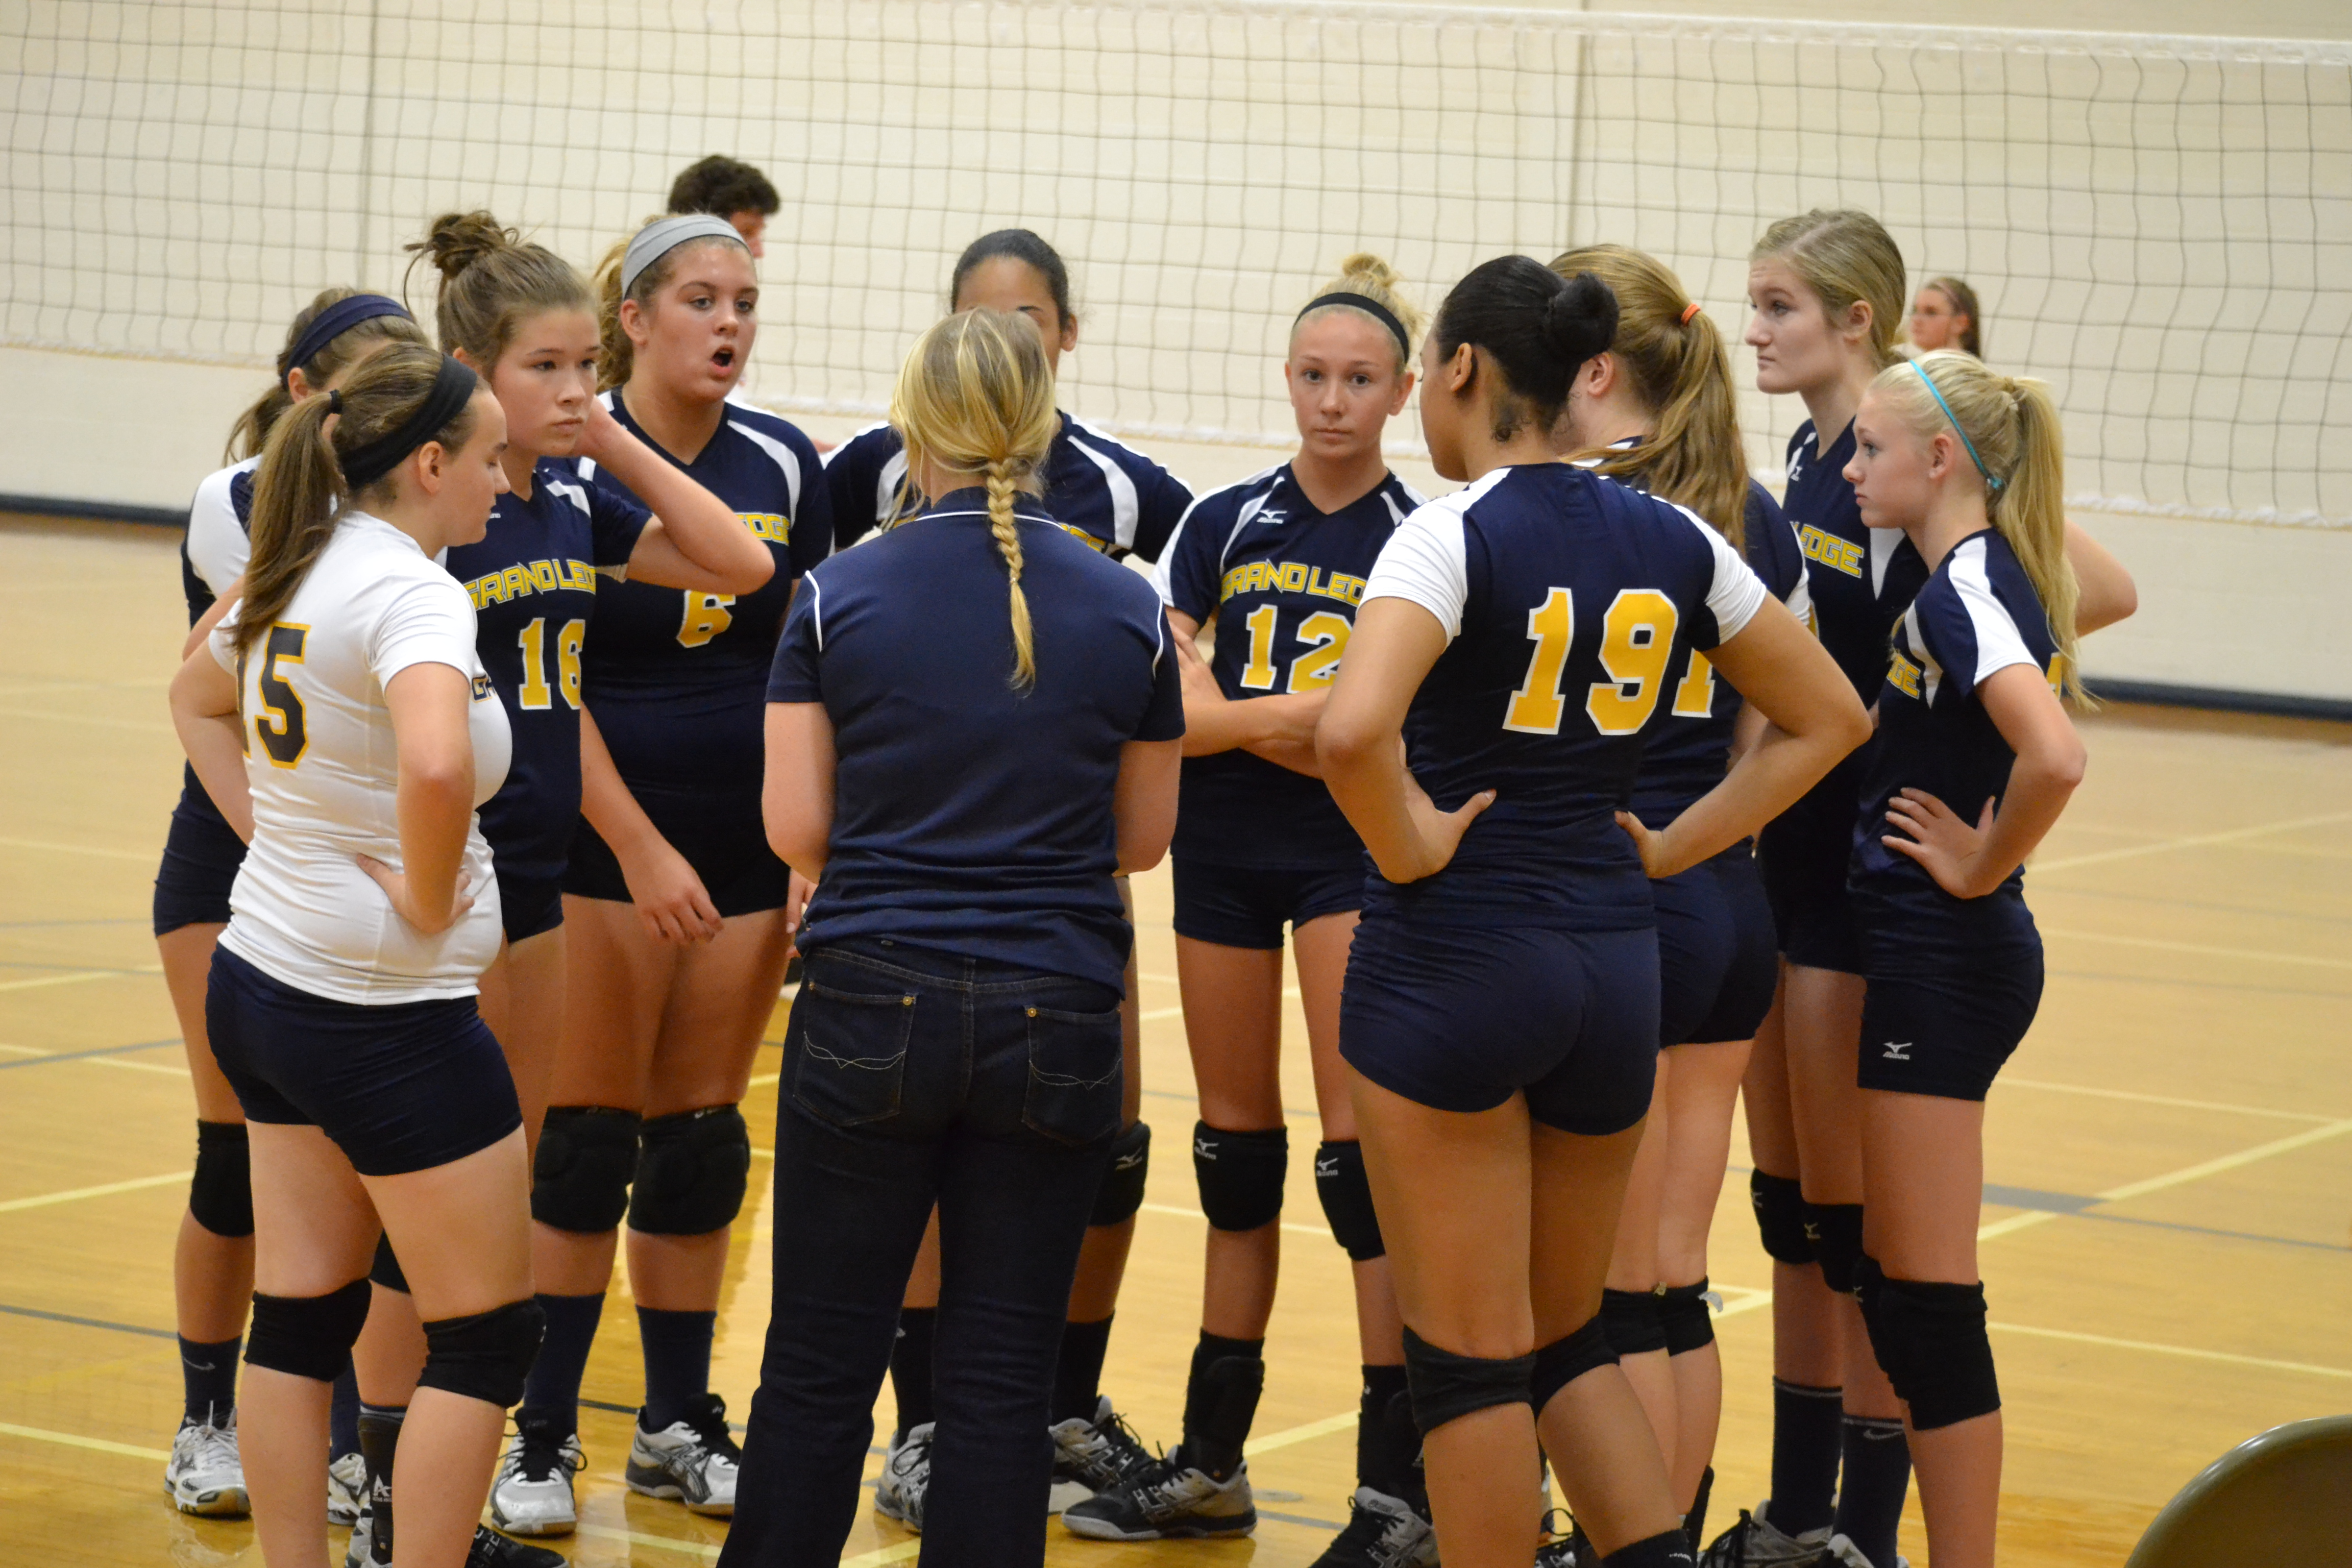 Volleyball Camp for 7th, 8th and 9th Grade Girls Scheduled for June 8-11